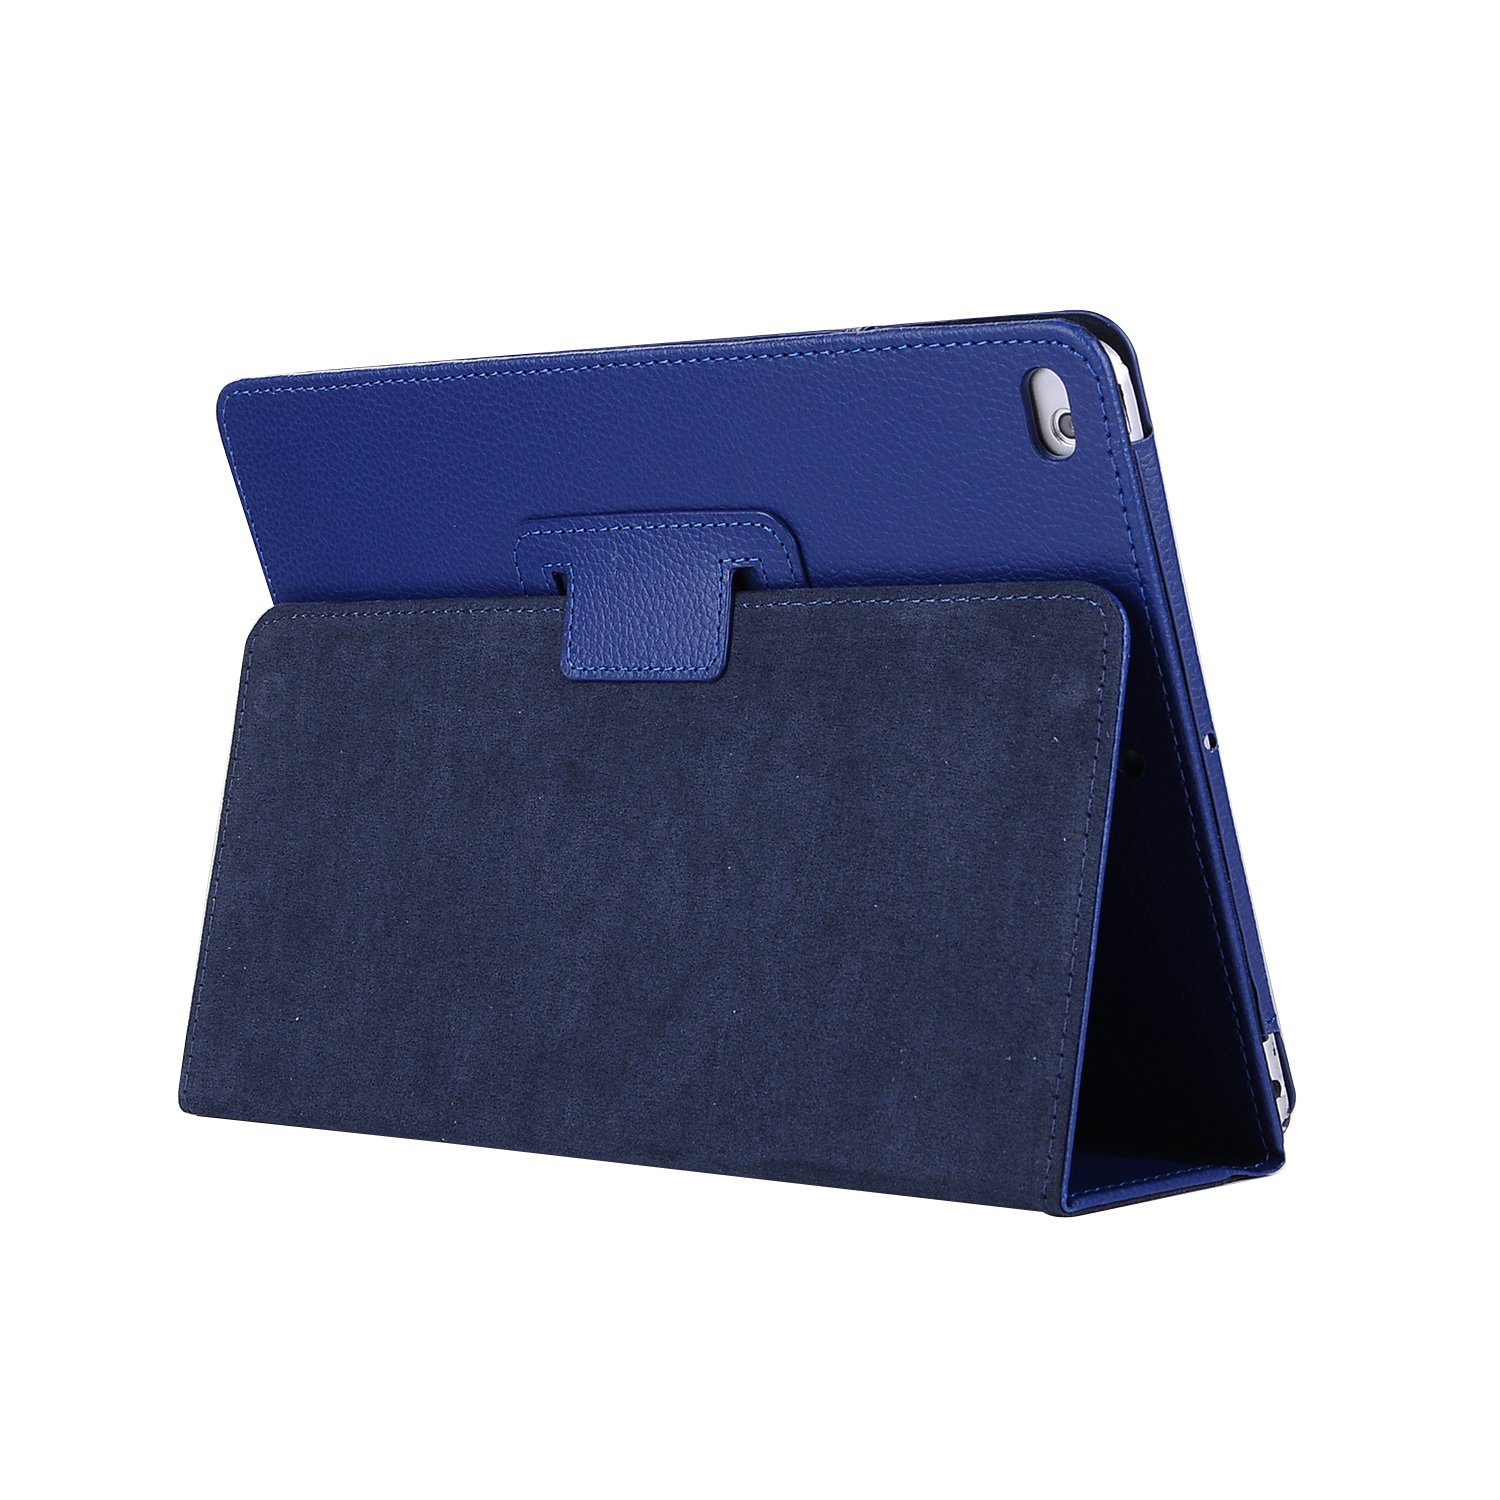 for iPad 10.2 dkblue Gray For Apple iPad 10 2 Case 2019 A2197 A2200 A2198 A2232 Foilo Stand PU Leather Cover